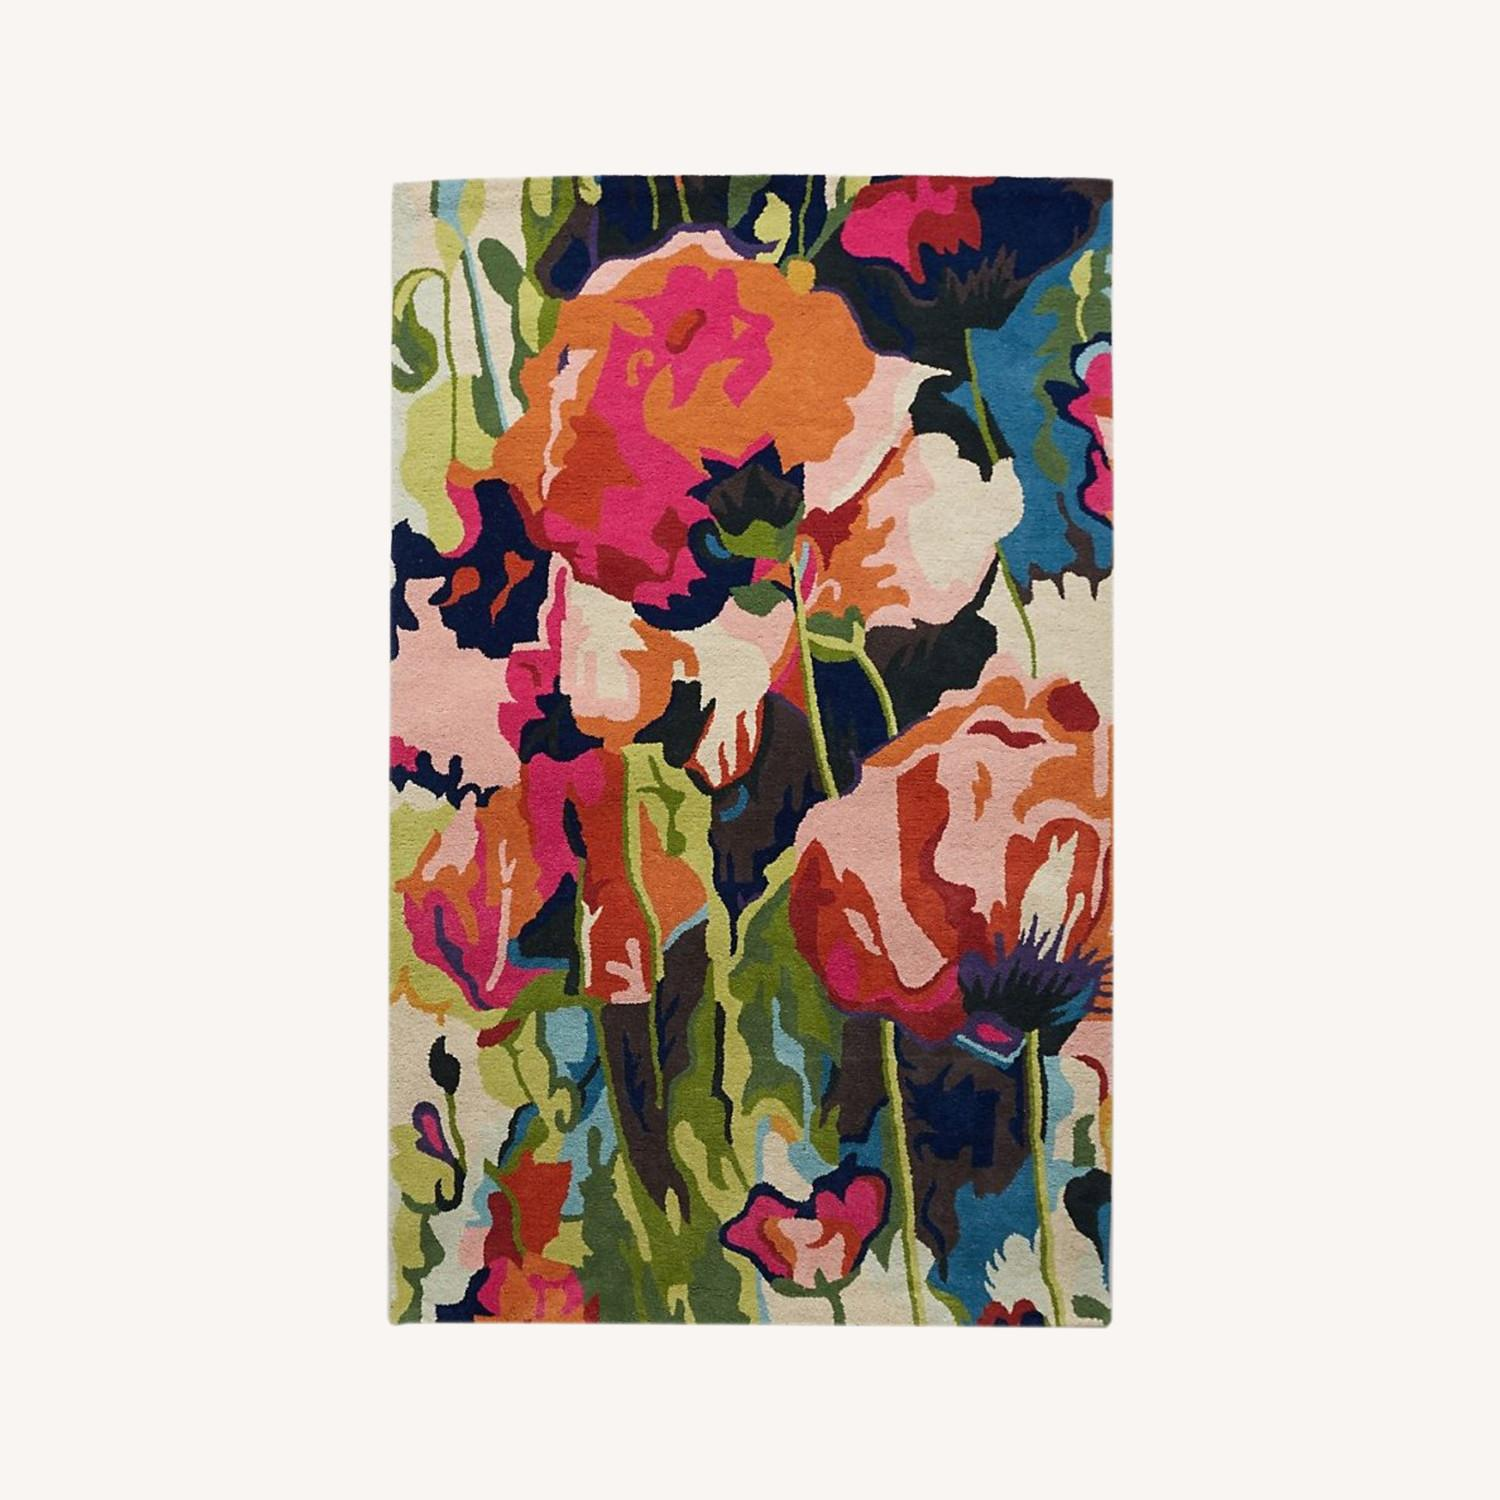 Anthropologie Poppy Rug 5x8 - image-0